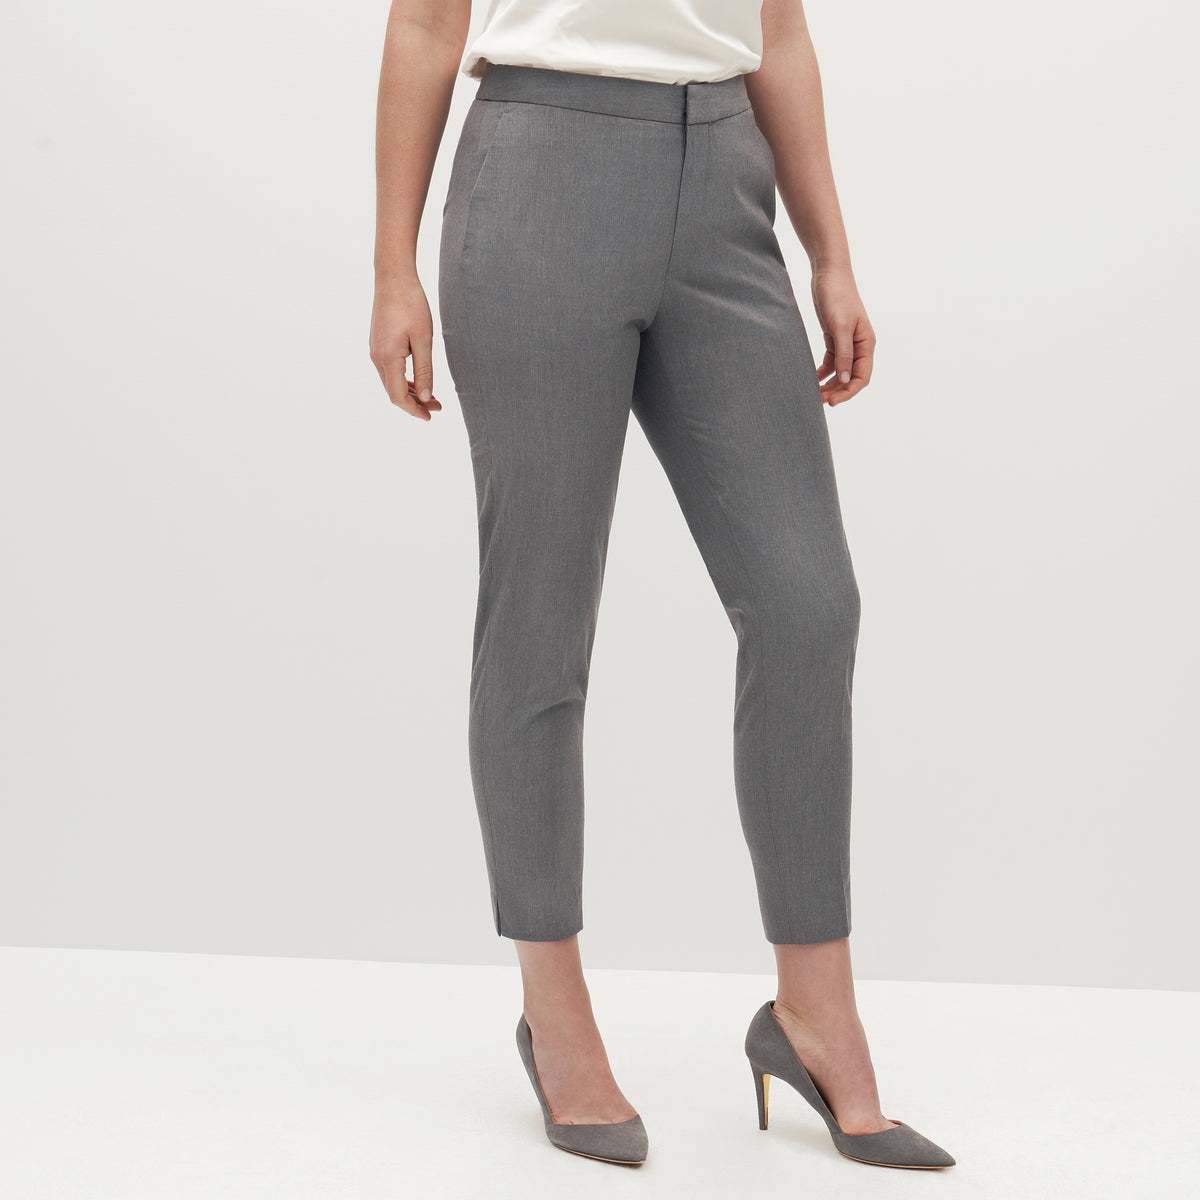 Women's Textured Gray Suit Pants